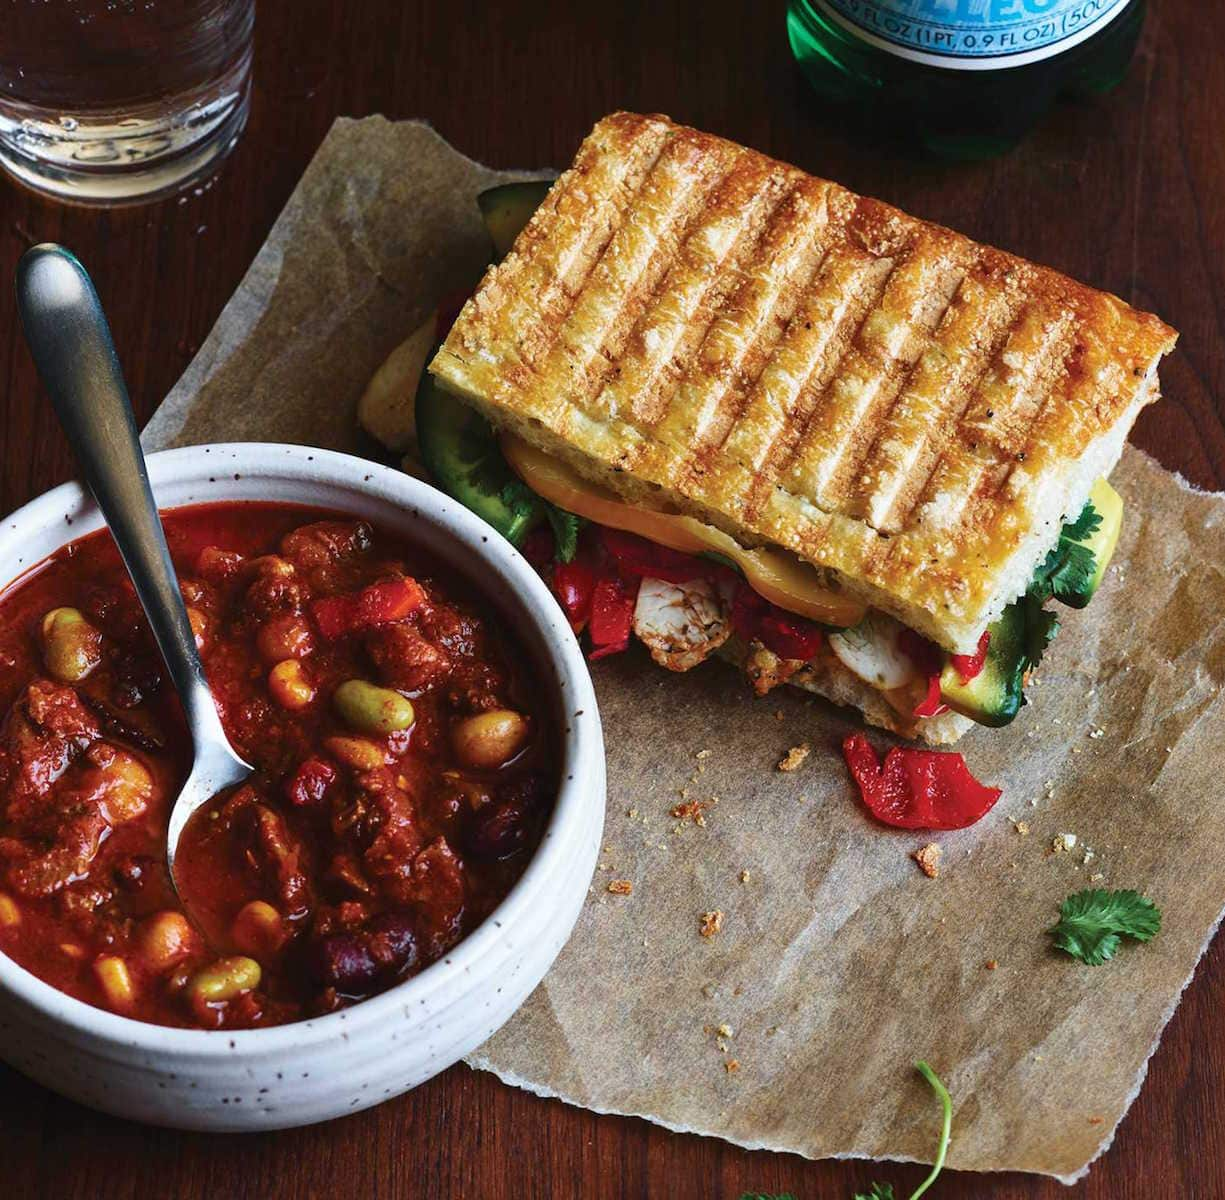 Treat your an entire office to lunch! Win a lunch from Panera Catering. | Value: $350 | Minimum bid: $!00